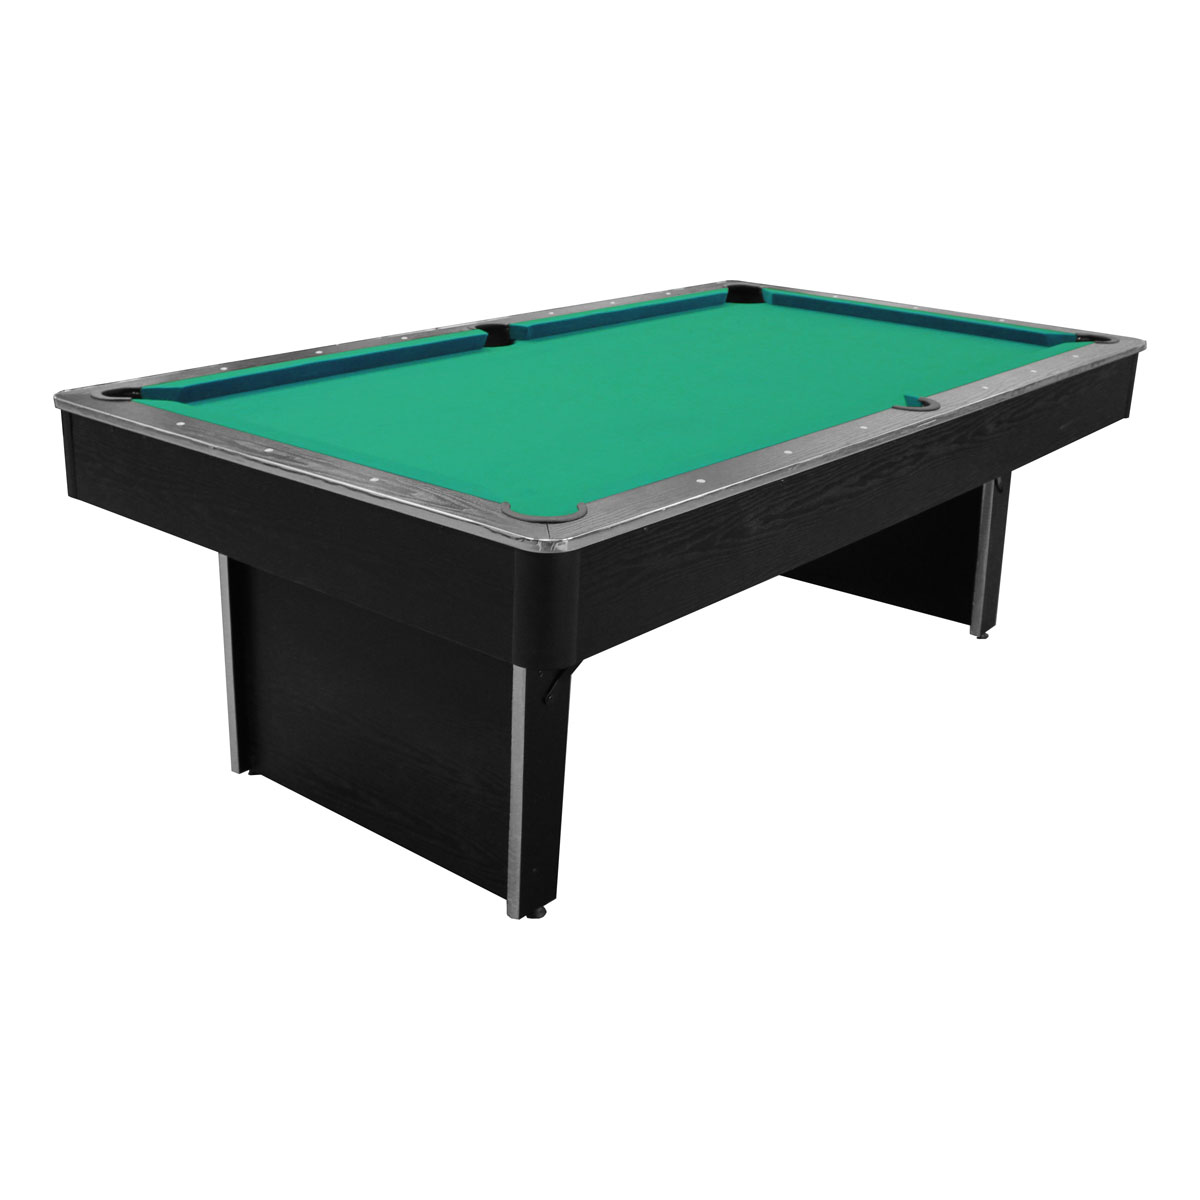 6 5 Imperial Non Slate Pool Table Gametablesonline Com